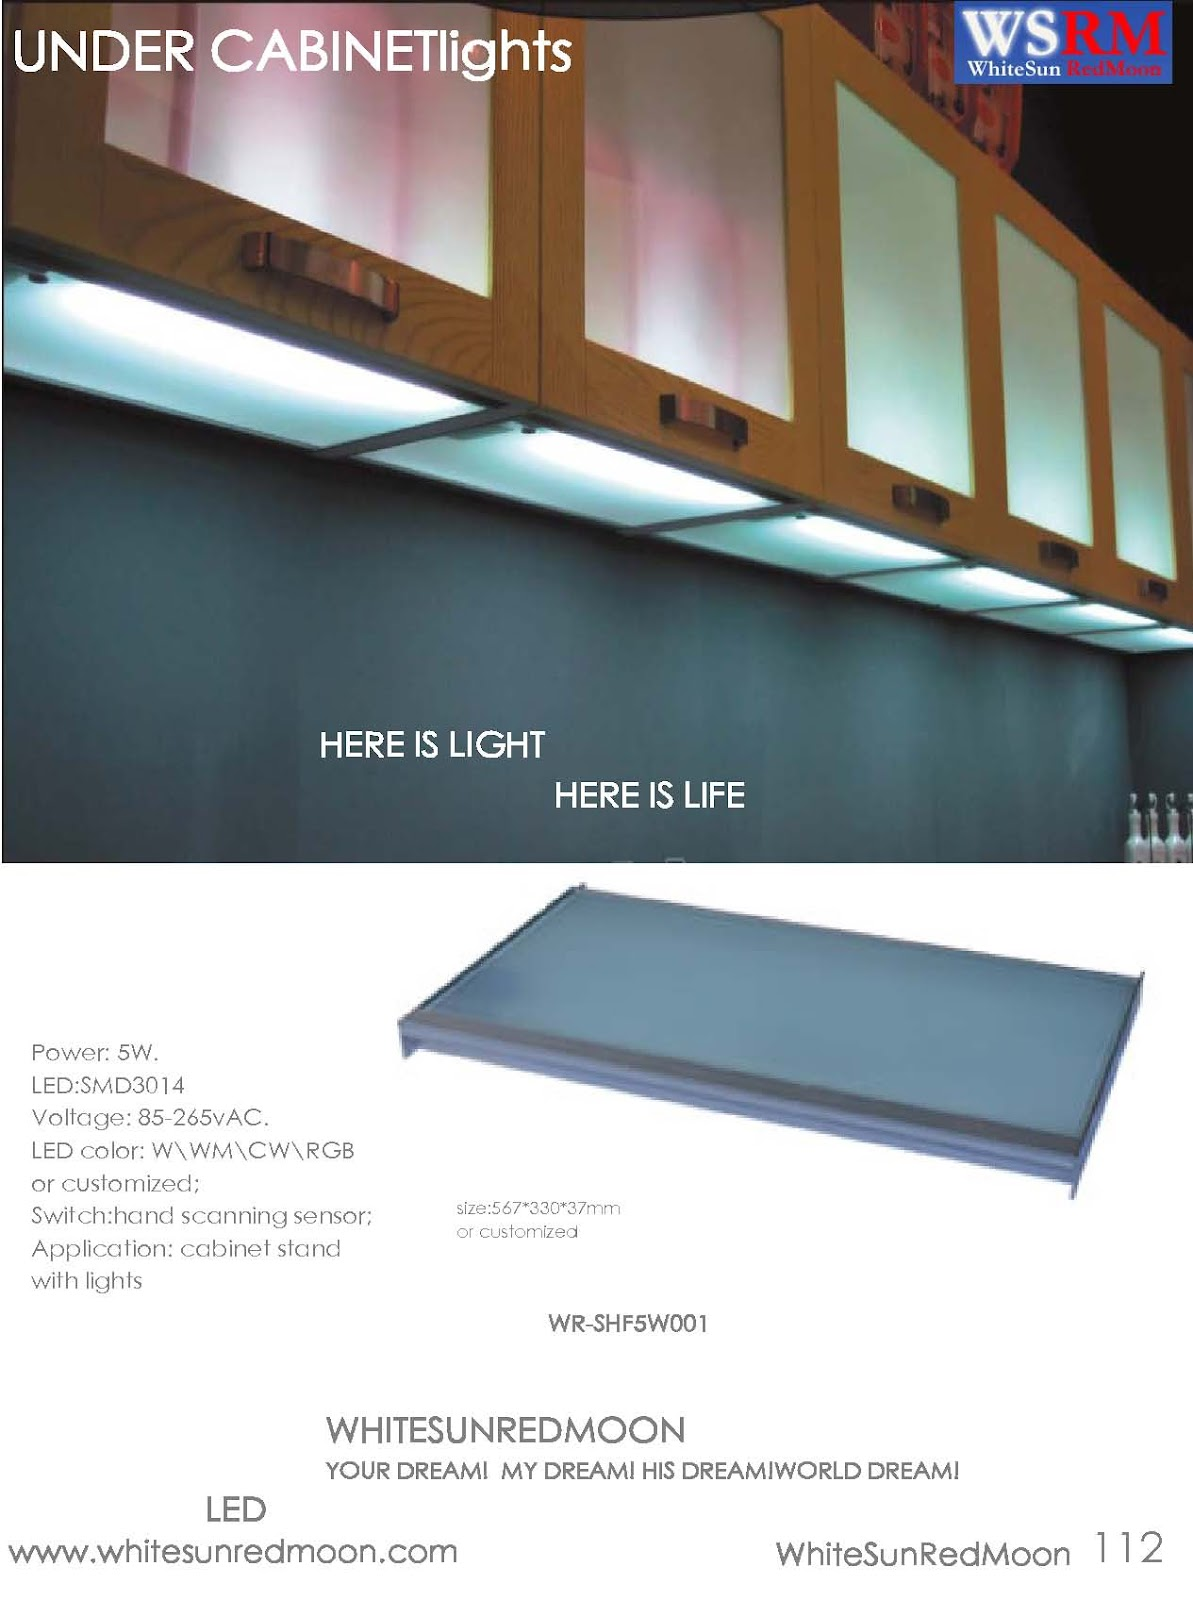 xenon task lighting under cabinet. themost lowprofile surface mount under cabinet lights are the microfluorescent t4 light fixtures xenon line voltage thin task lighting